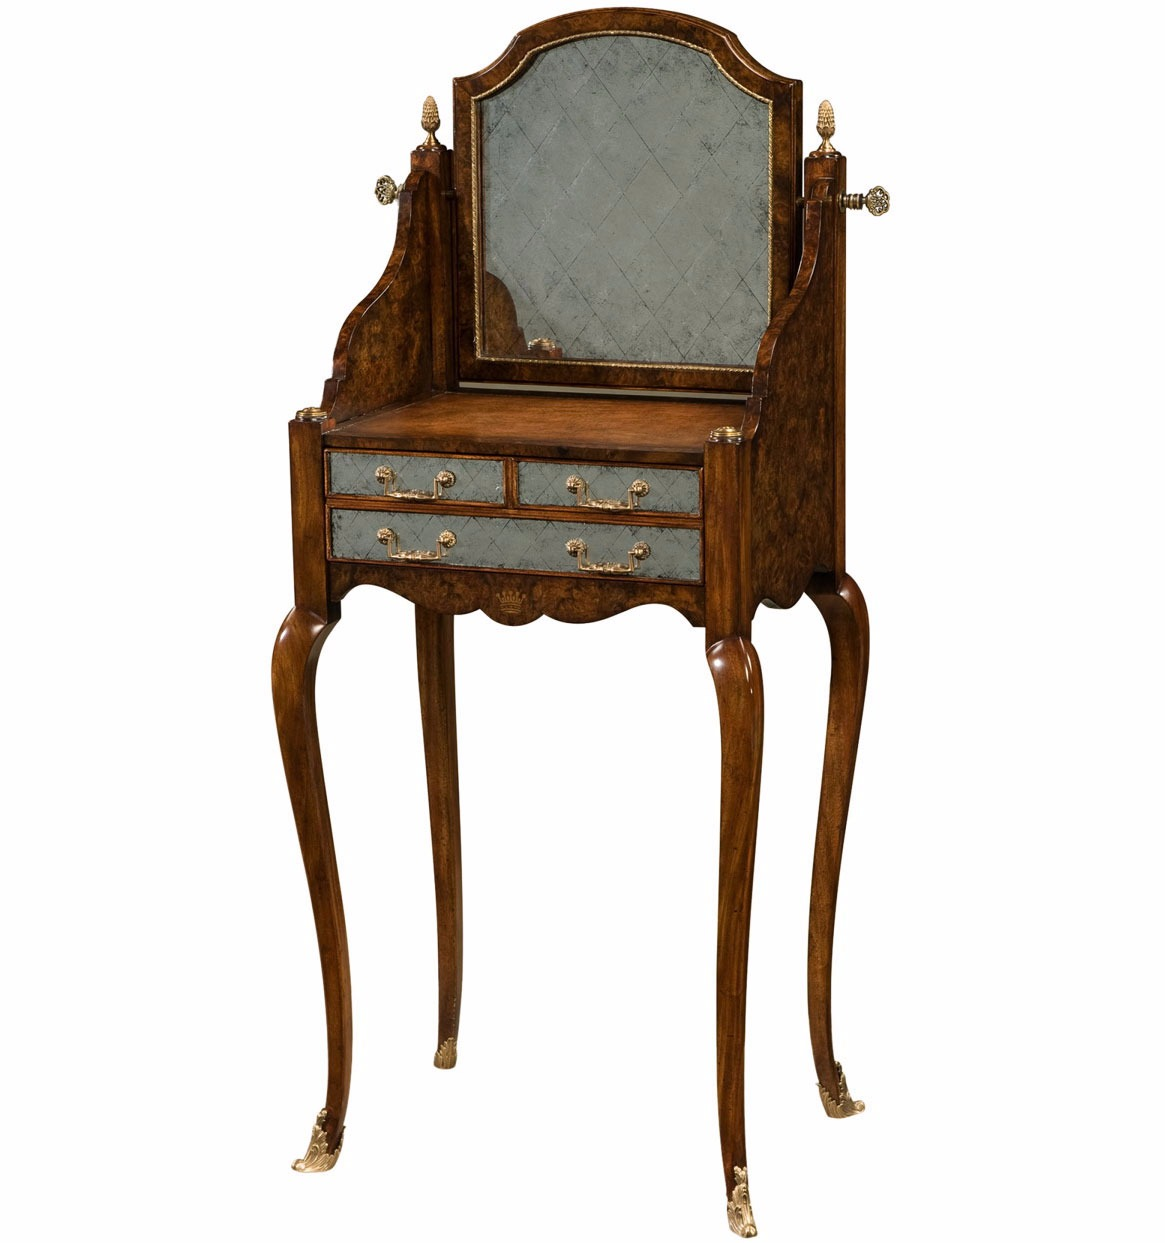 Louis XV style lady's dressing table